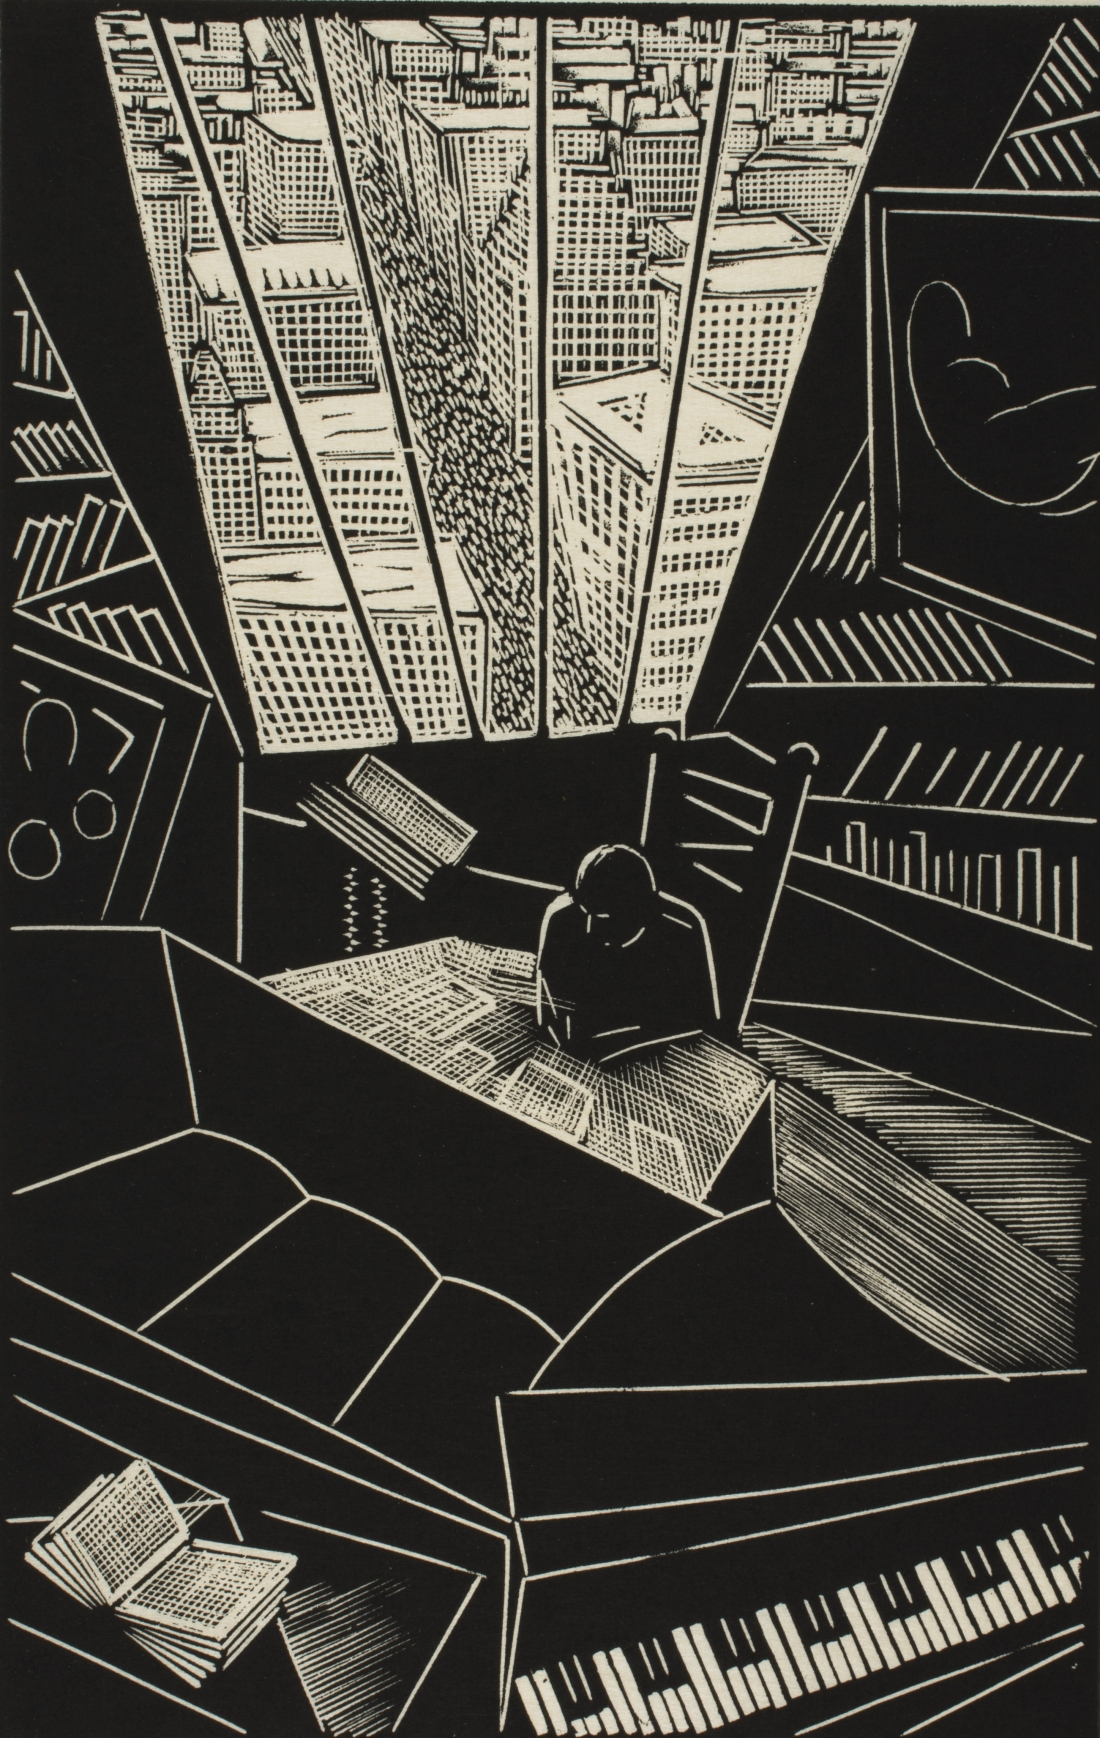 Of a Great City, 1923, by Wharton H. Esherick, American, 1887 - 1970. Wood engraving, image: 9 15/16 x 6 5/16 inches, sheet: 11 7/16 x 7 1/2 inches. Philadelphia Museum of Art: Purchased with the Lola Downin Peck Fund from the Carl and Laura Zigrosser Collection, 1979-12-11